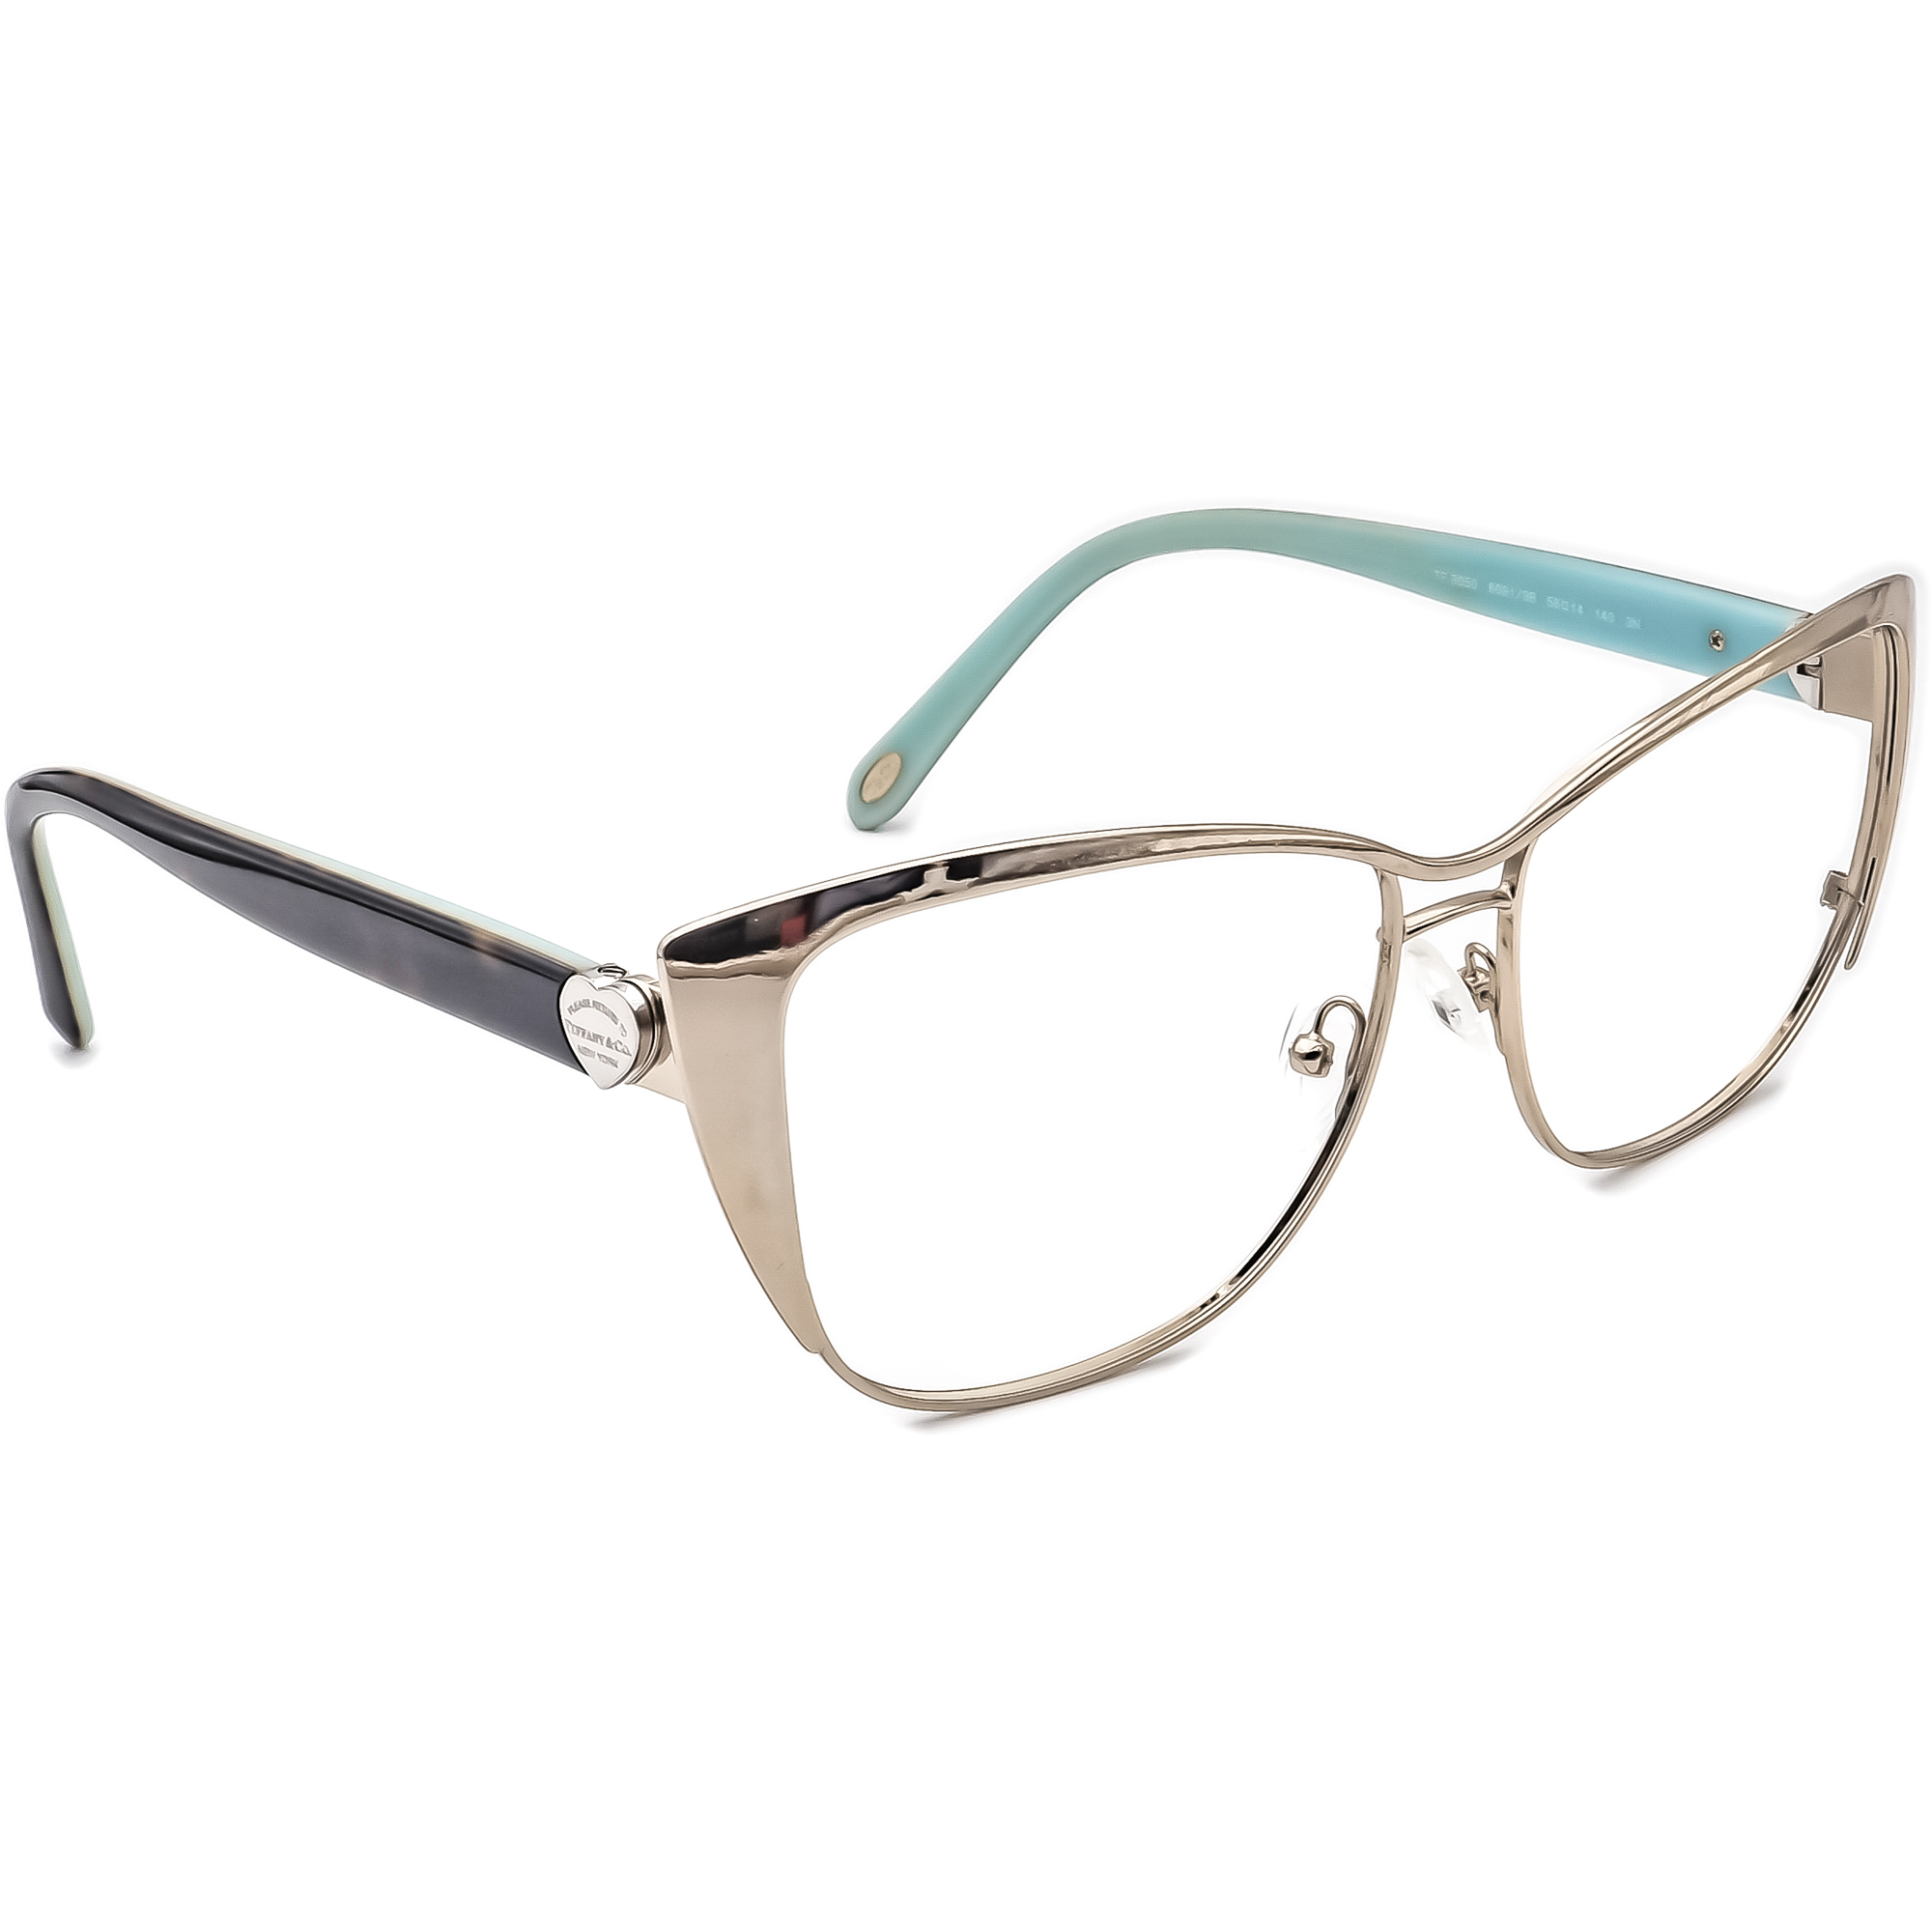 Tiffany & Co. TF 3050 6091/3B Sunglasses Frame Only